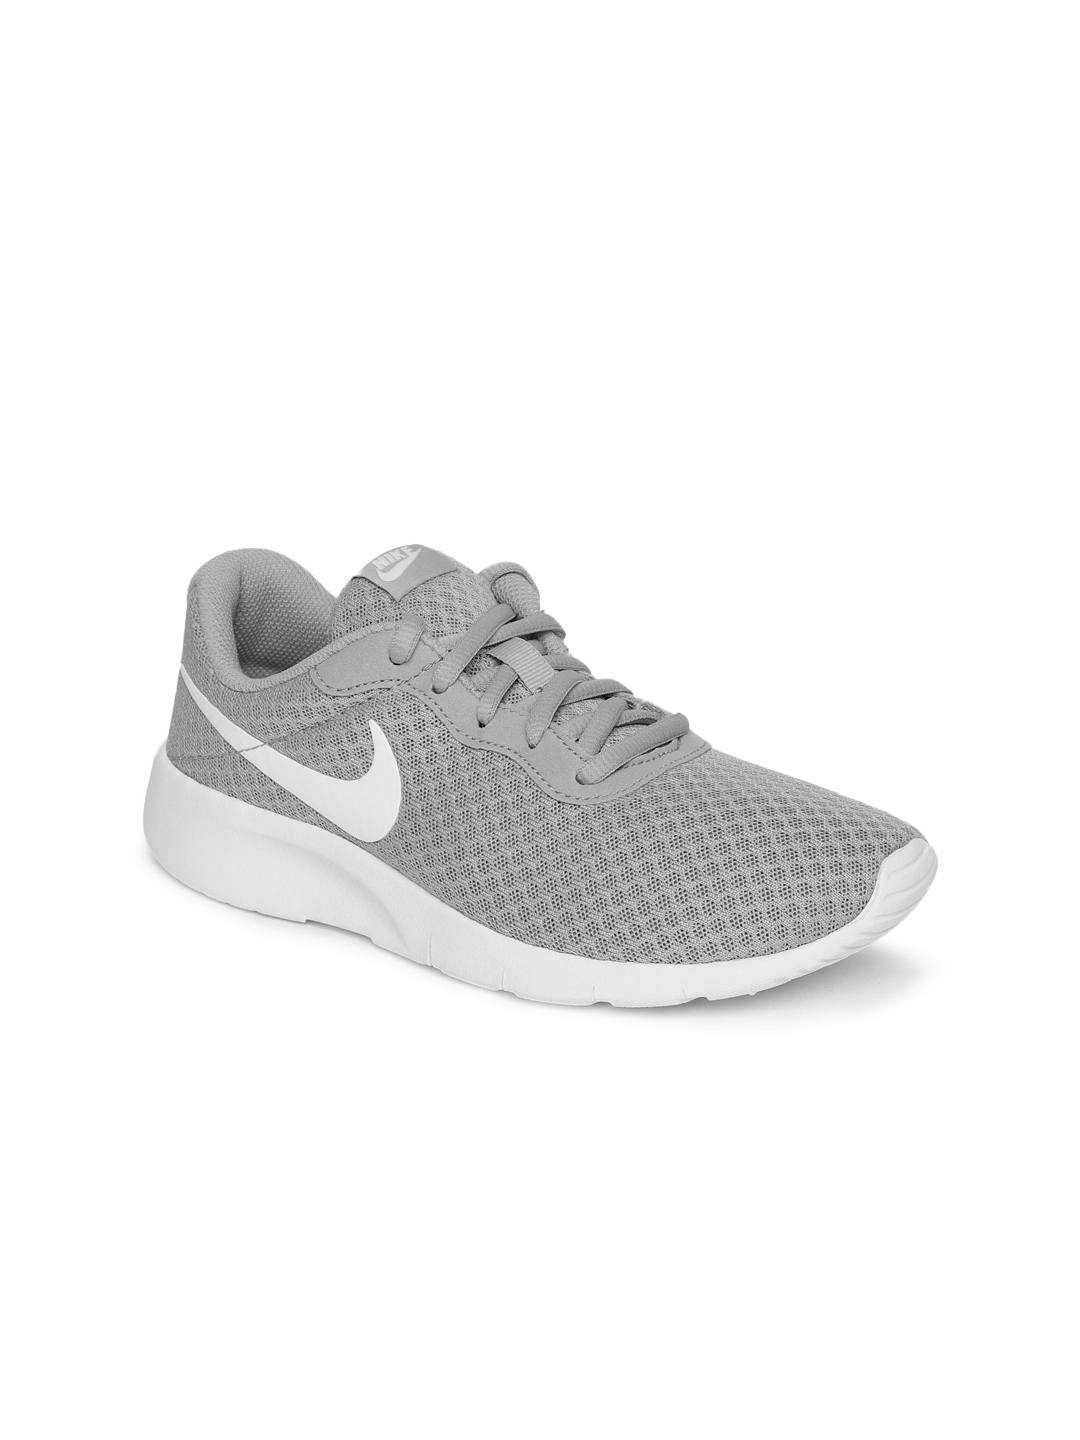 uk availability fe5cc 99817 ... kids trainers 9c422 932fb  shopping nike boys grey tanjun gs sneakers  3dd48 668fd